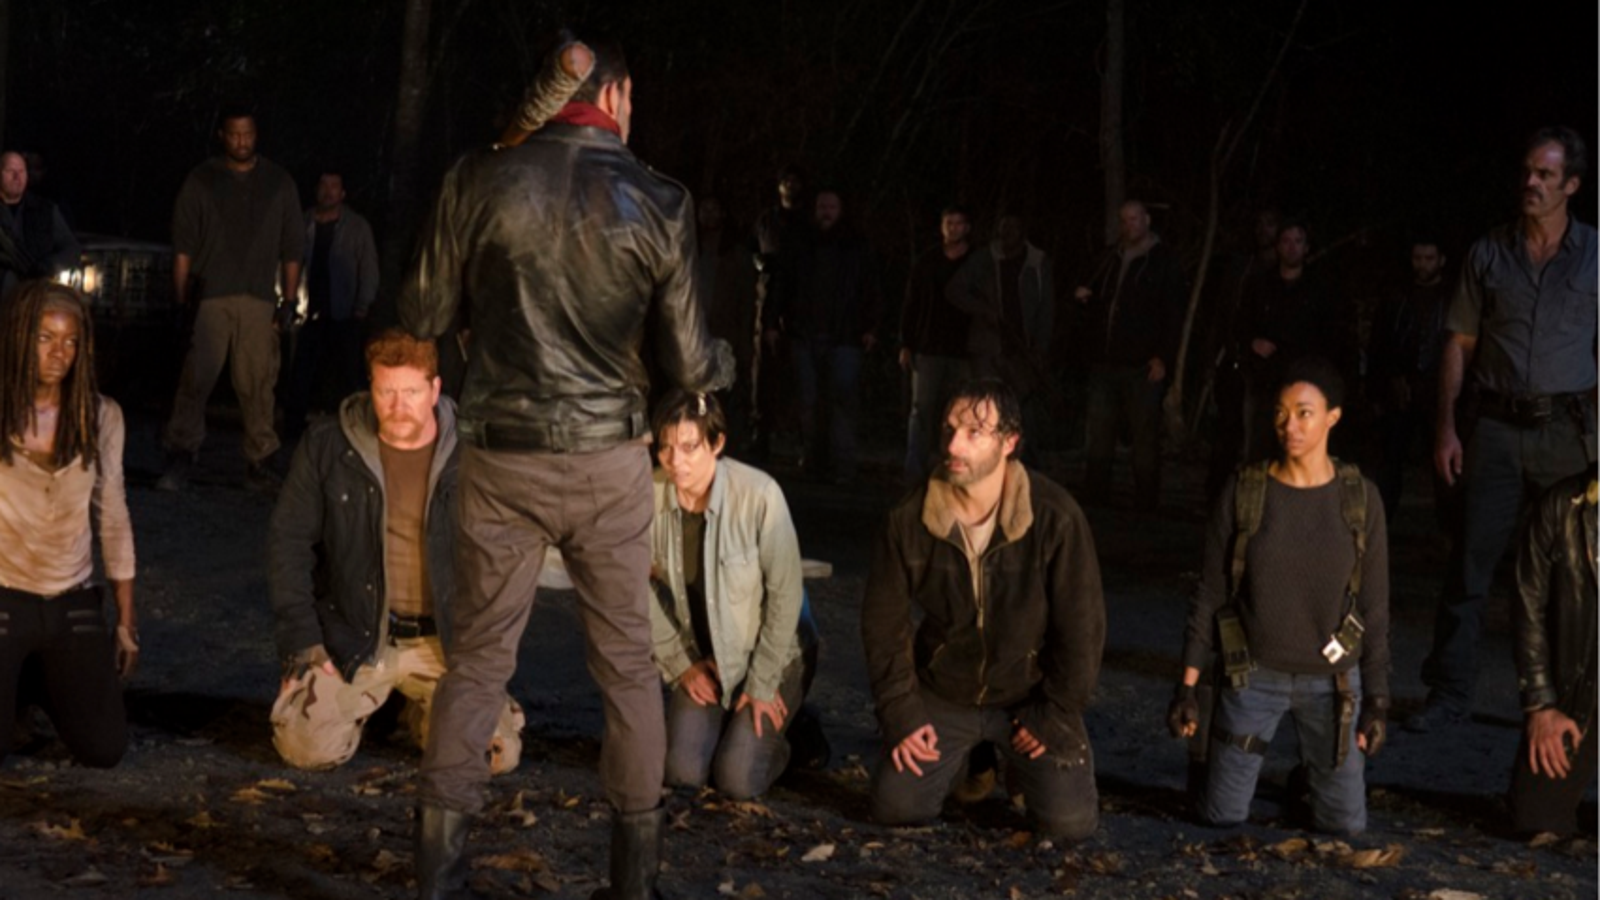 The Walking Dead Creator Doesn't Want the Show to End the Same as His Comics